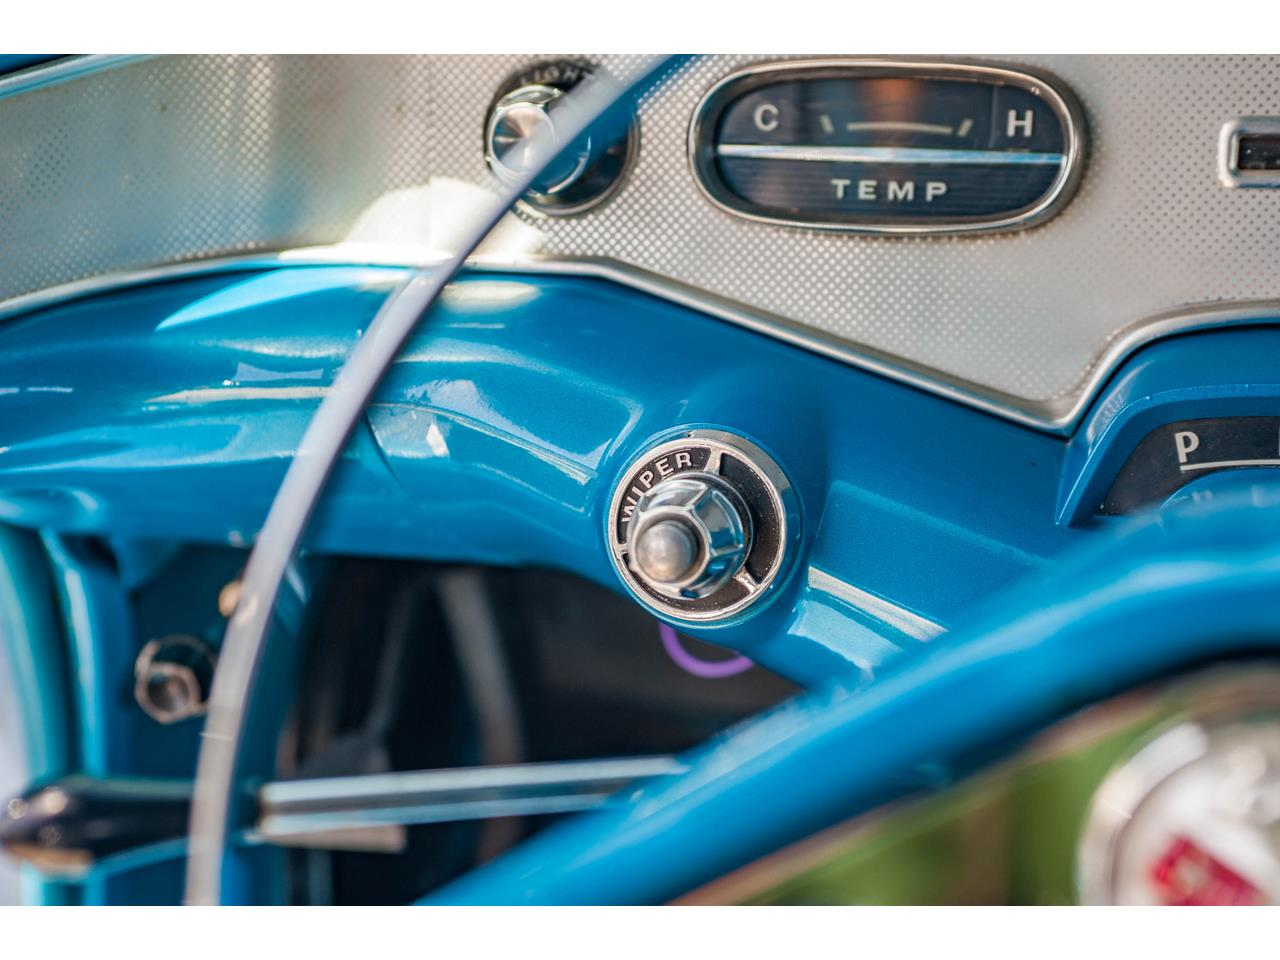 Large Picture of 1958 Impala located in Illinois - $62,000.00 Offered by Gateway Classic Cars - St. Louis - QB9Q